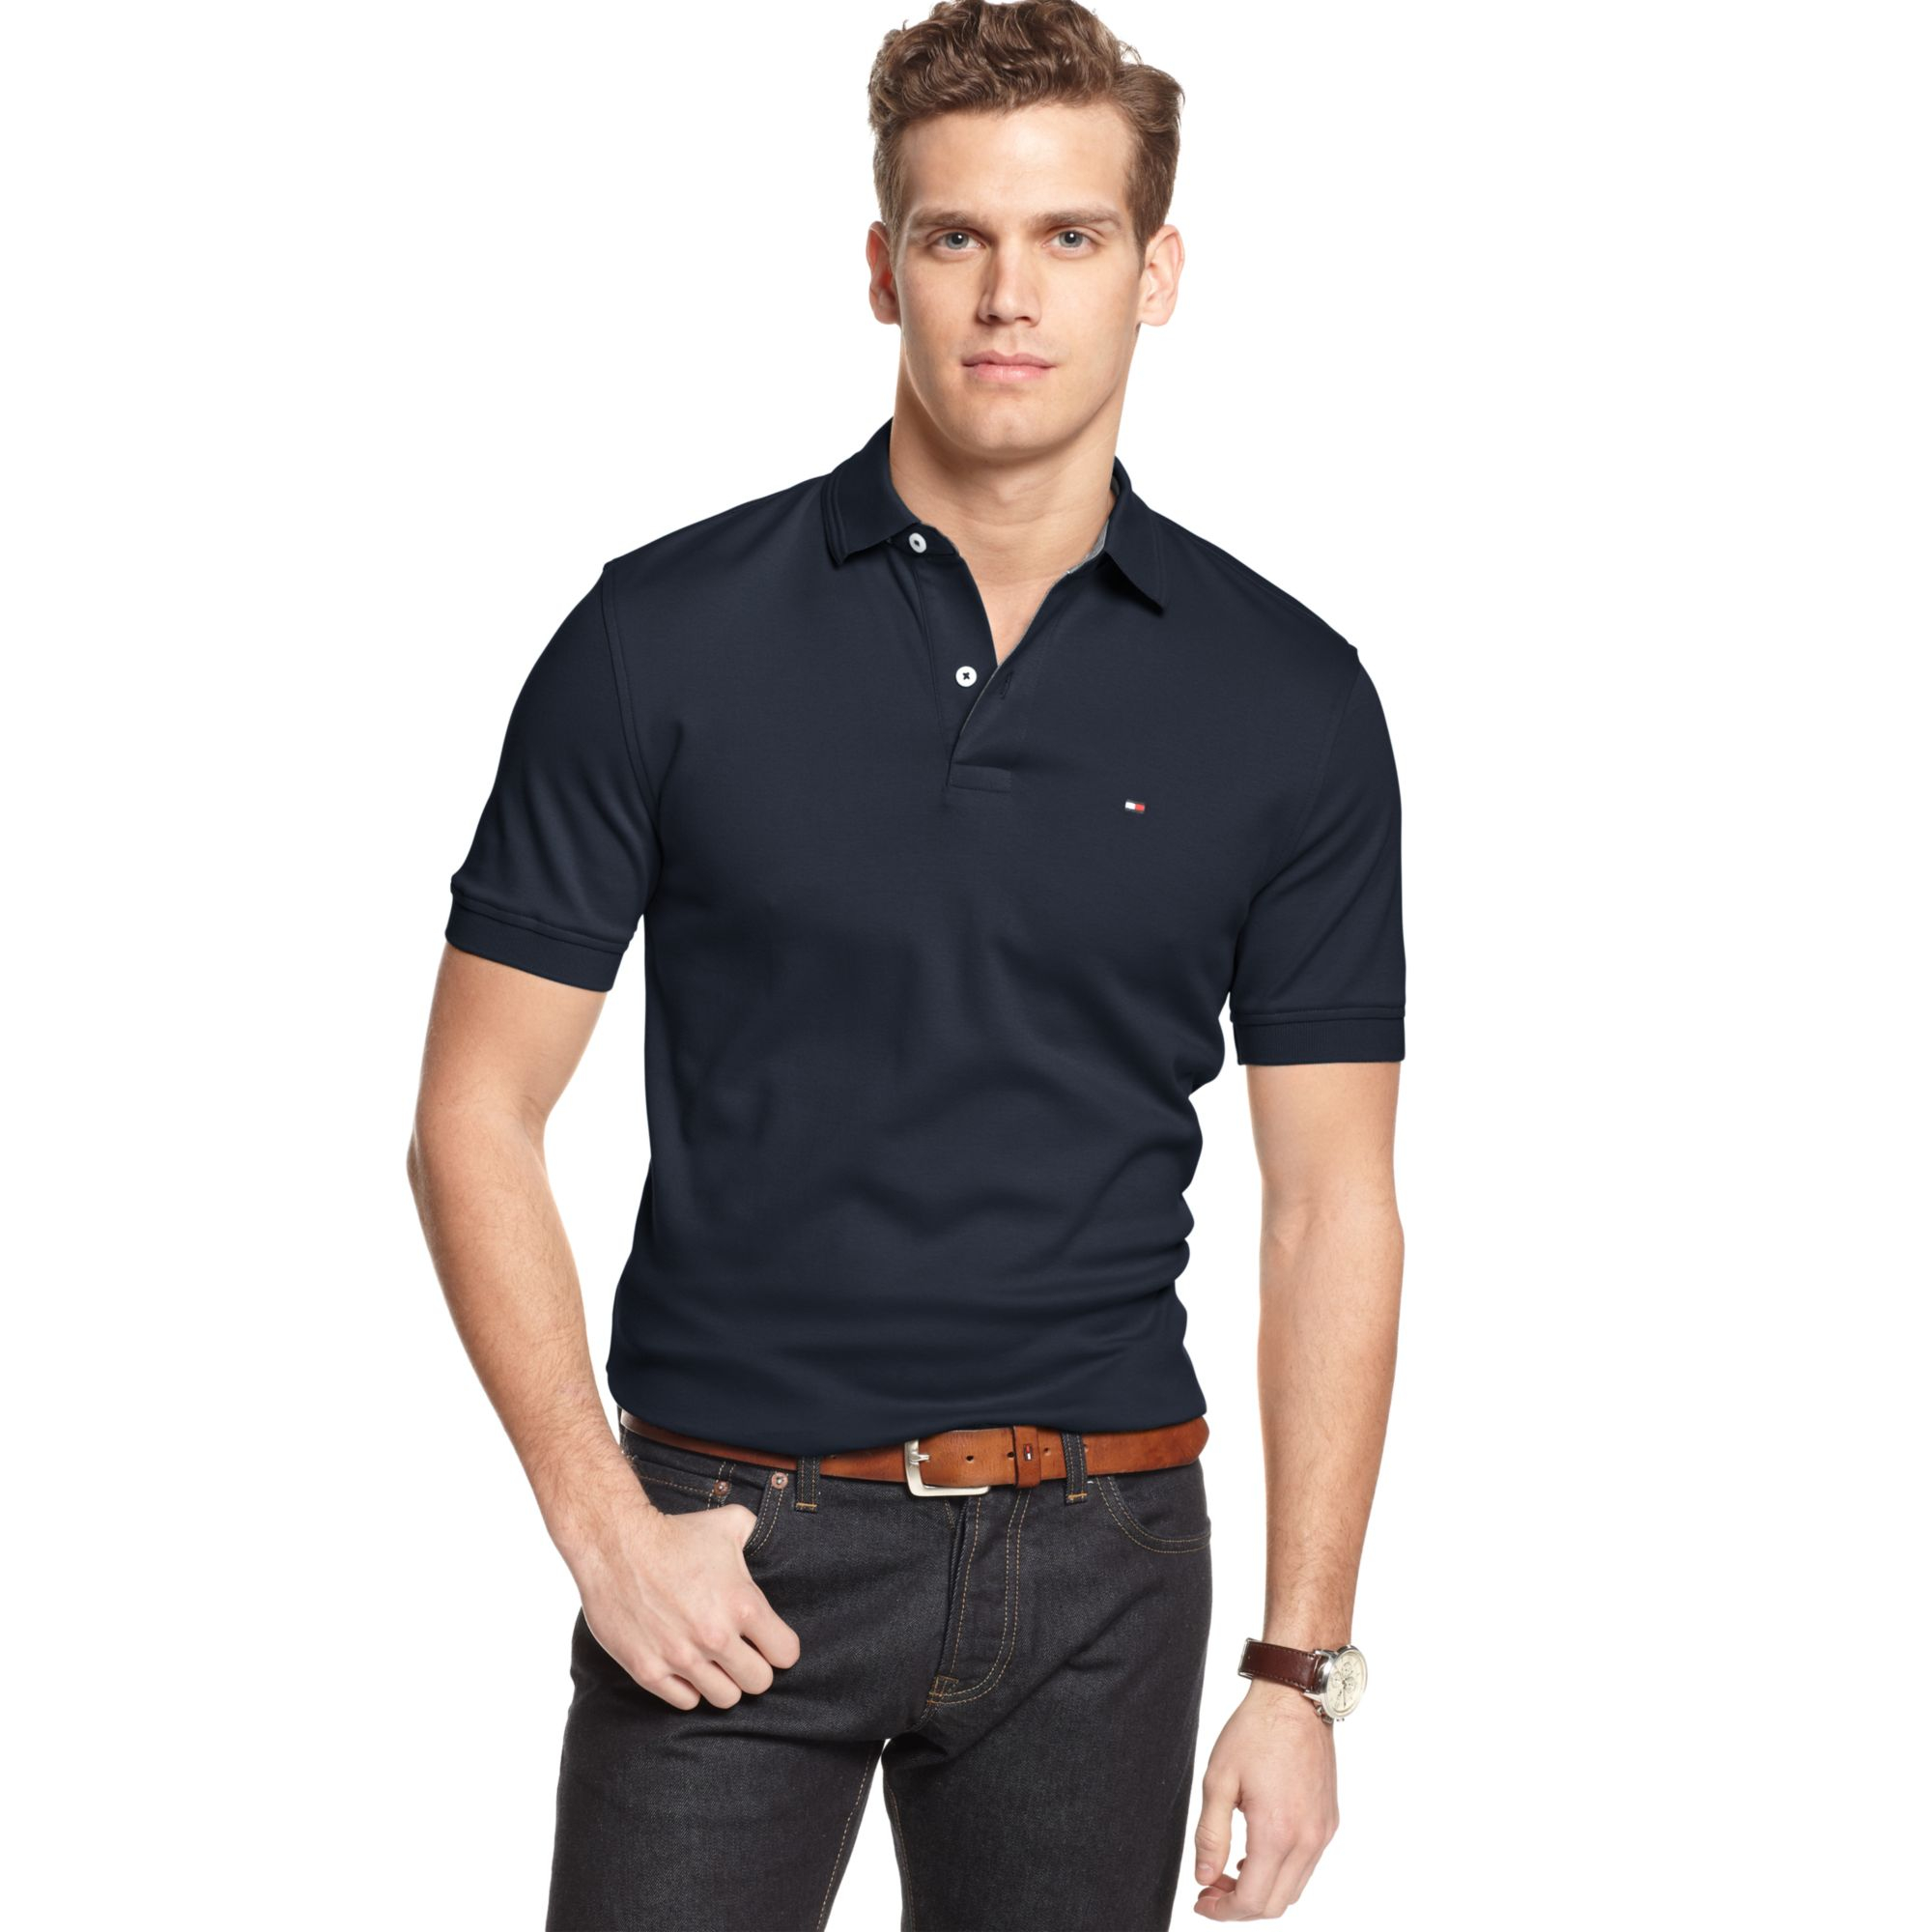 lyst tommy hilfiger jacob polo shirt in blue for men. Black Bedroom Furniture Sets. Home Design Ideas